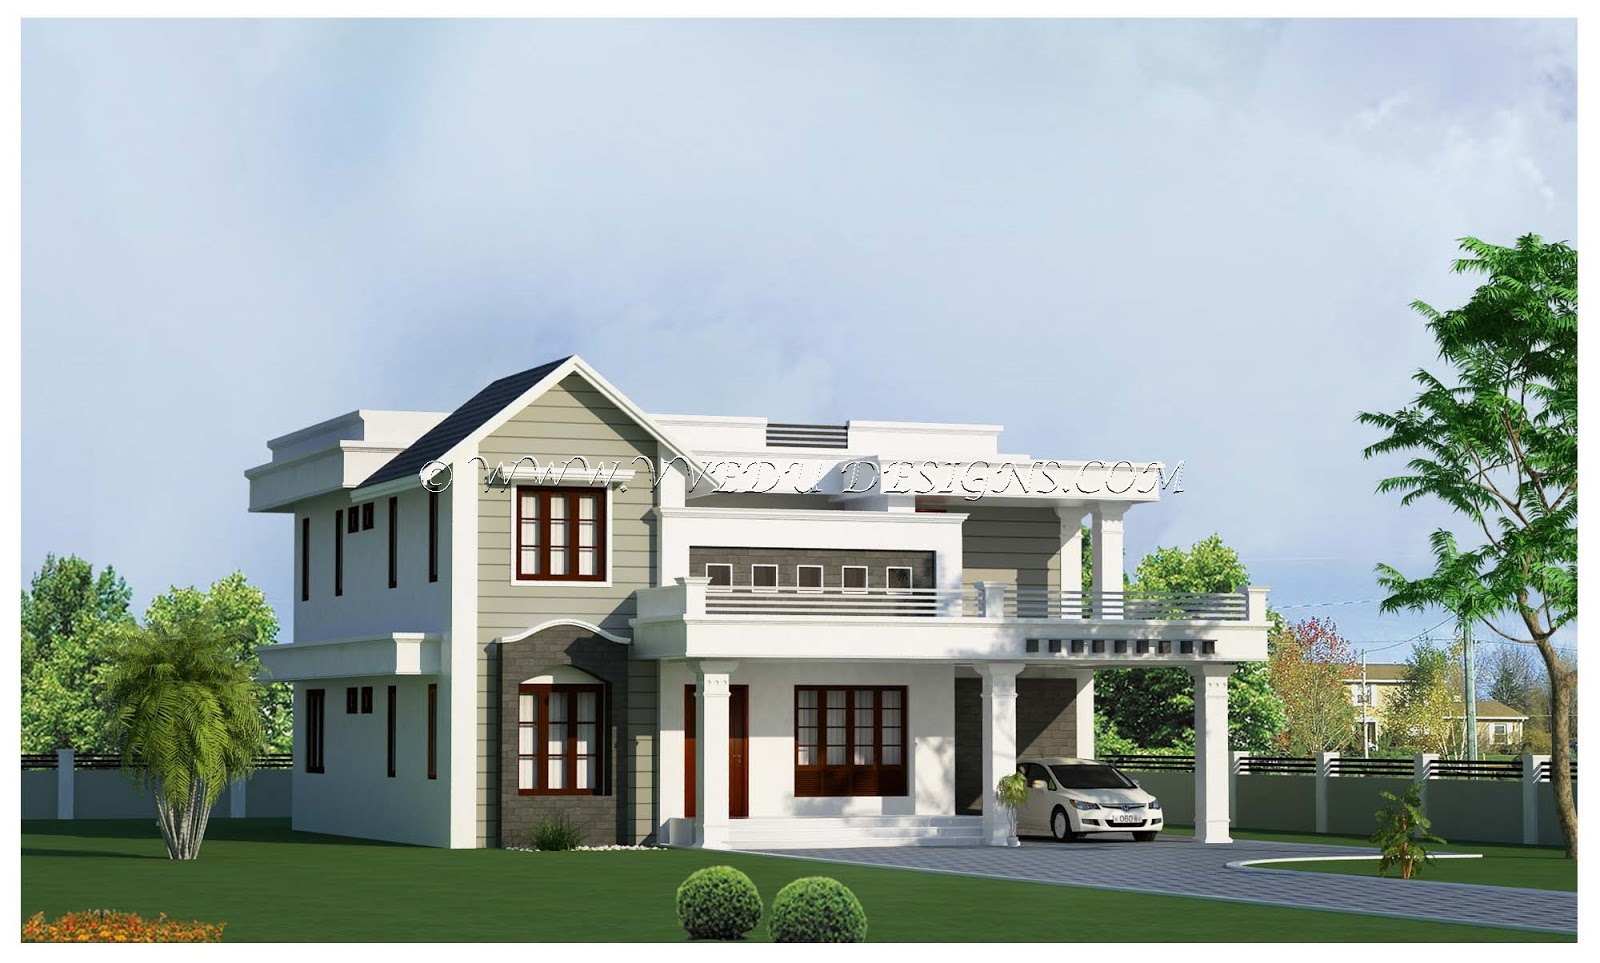 Veedu designs veedu designs kerala home design by navaz ak for Home design photo